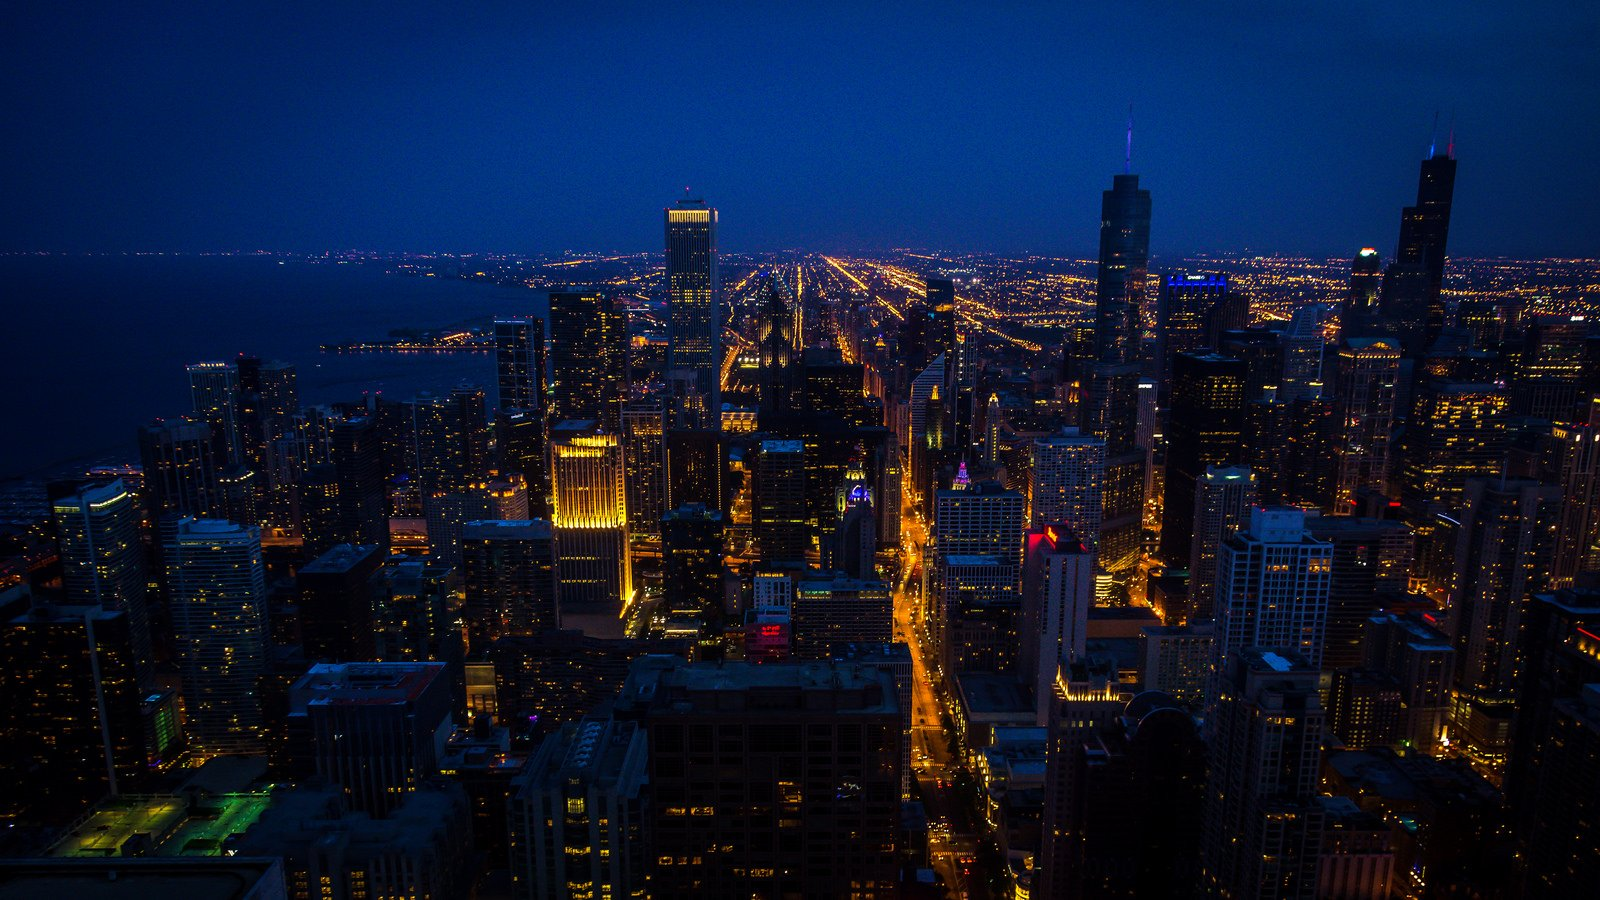 architecture bridges chicago cities City Francisco Night skyline USA Illinois Trump Tower Mid-Ouest comtA